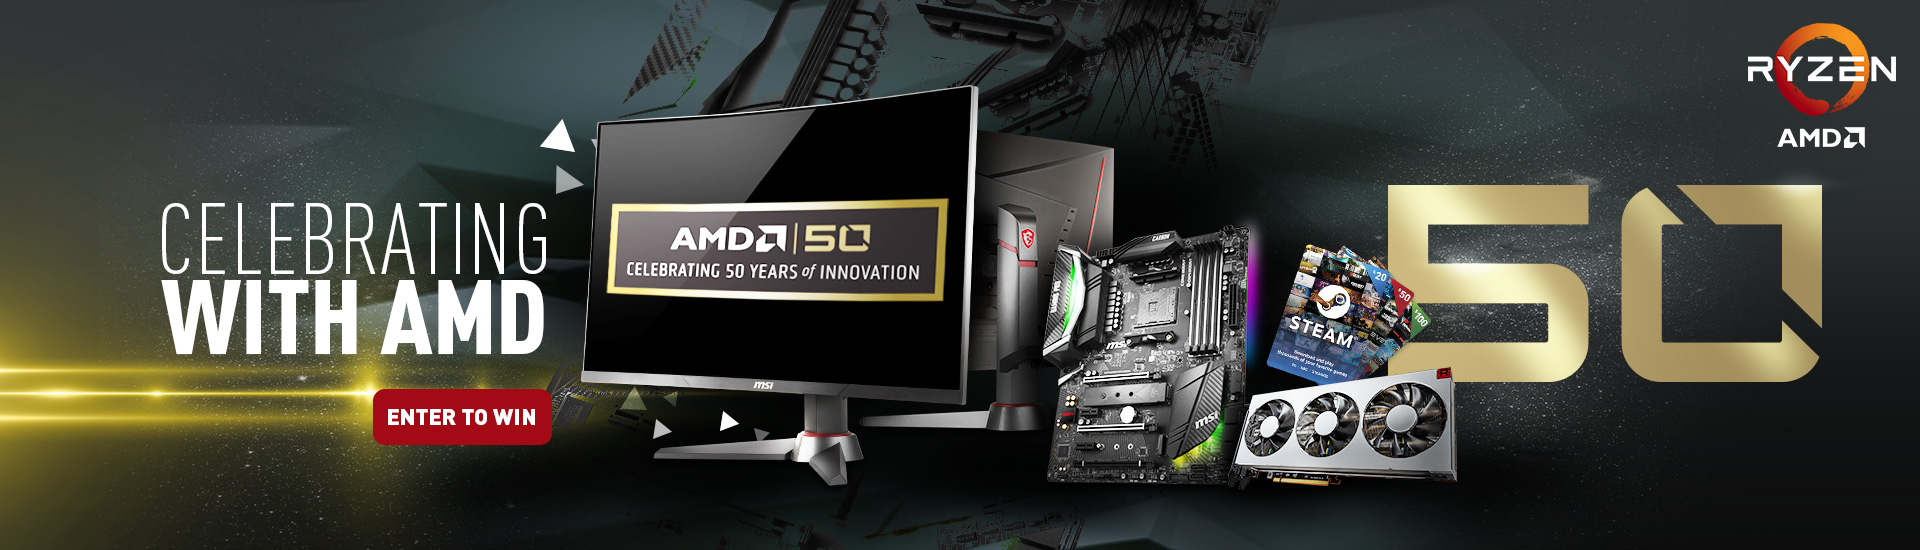 AMD Social Media Giveaway